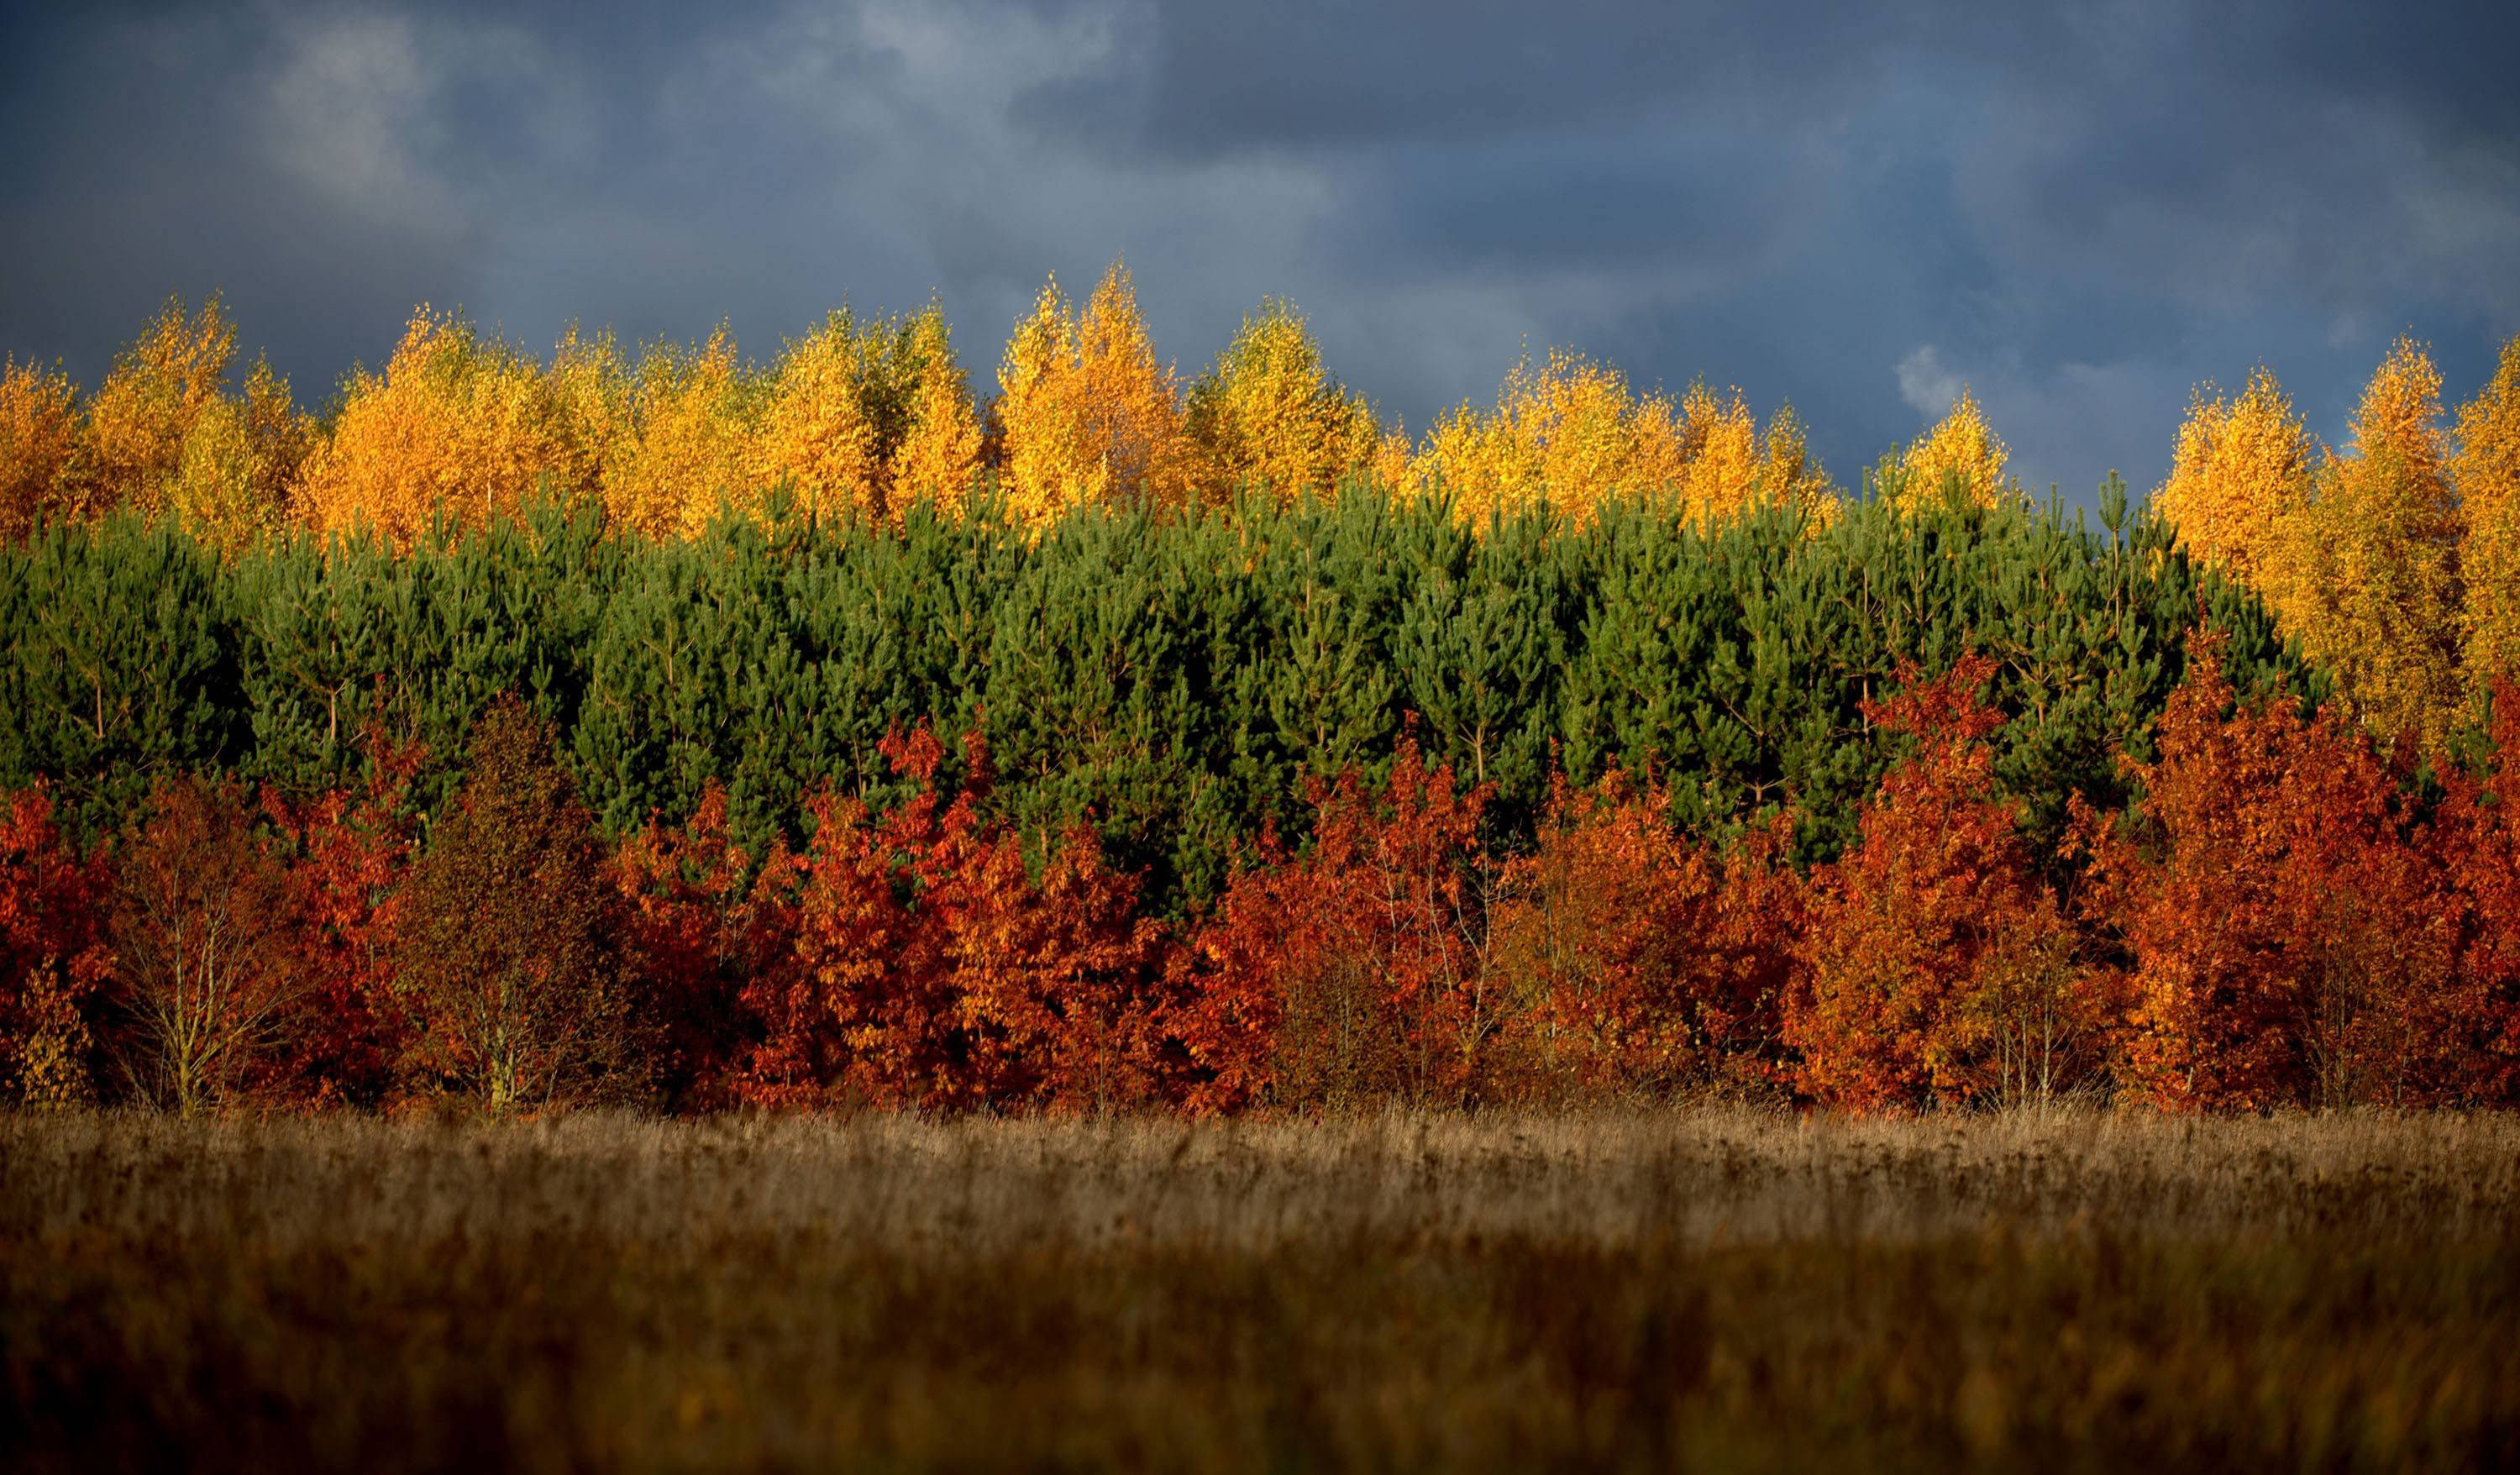 Autumn in Lithuania wallpaper